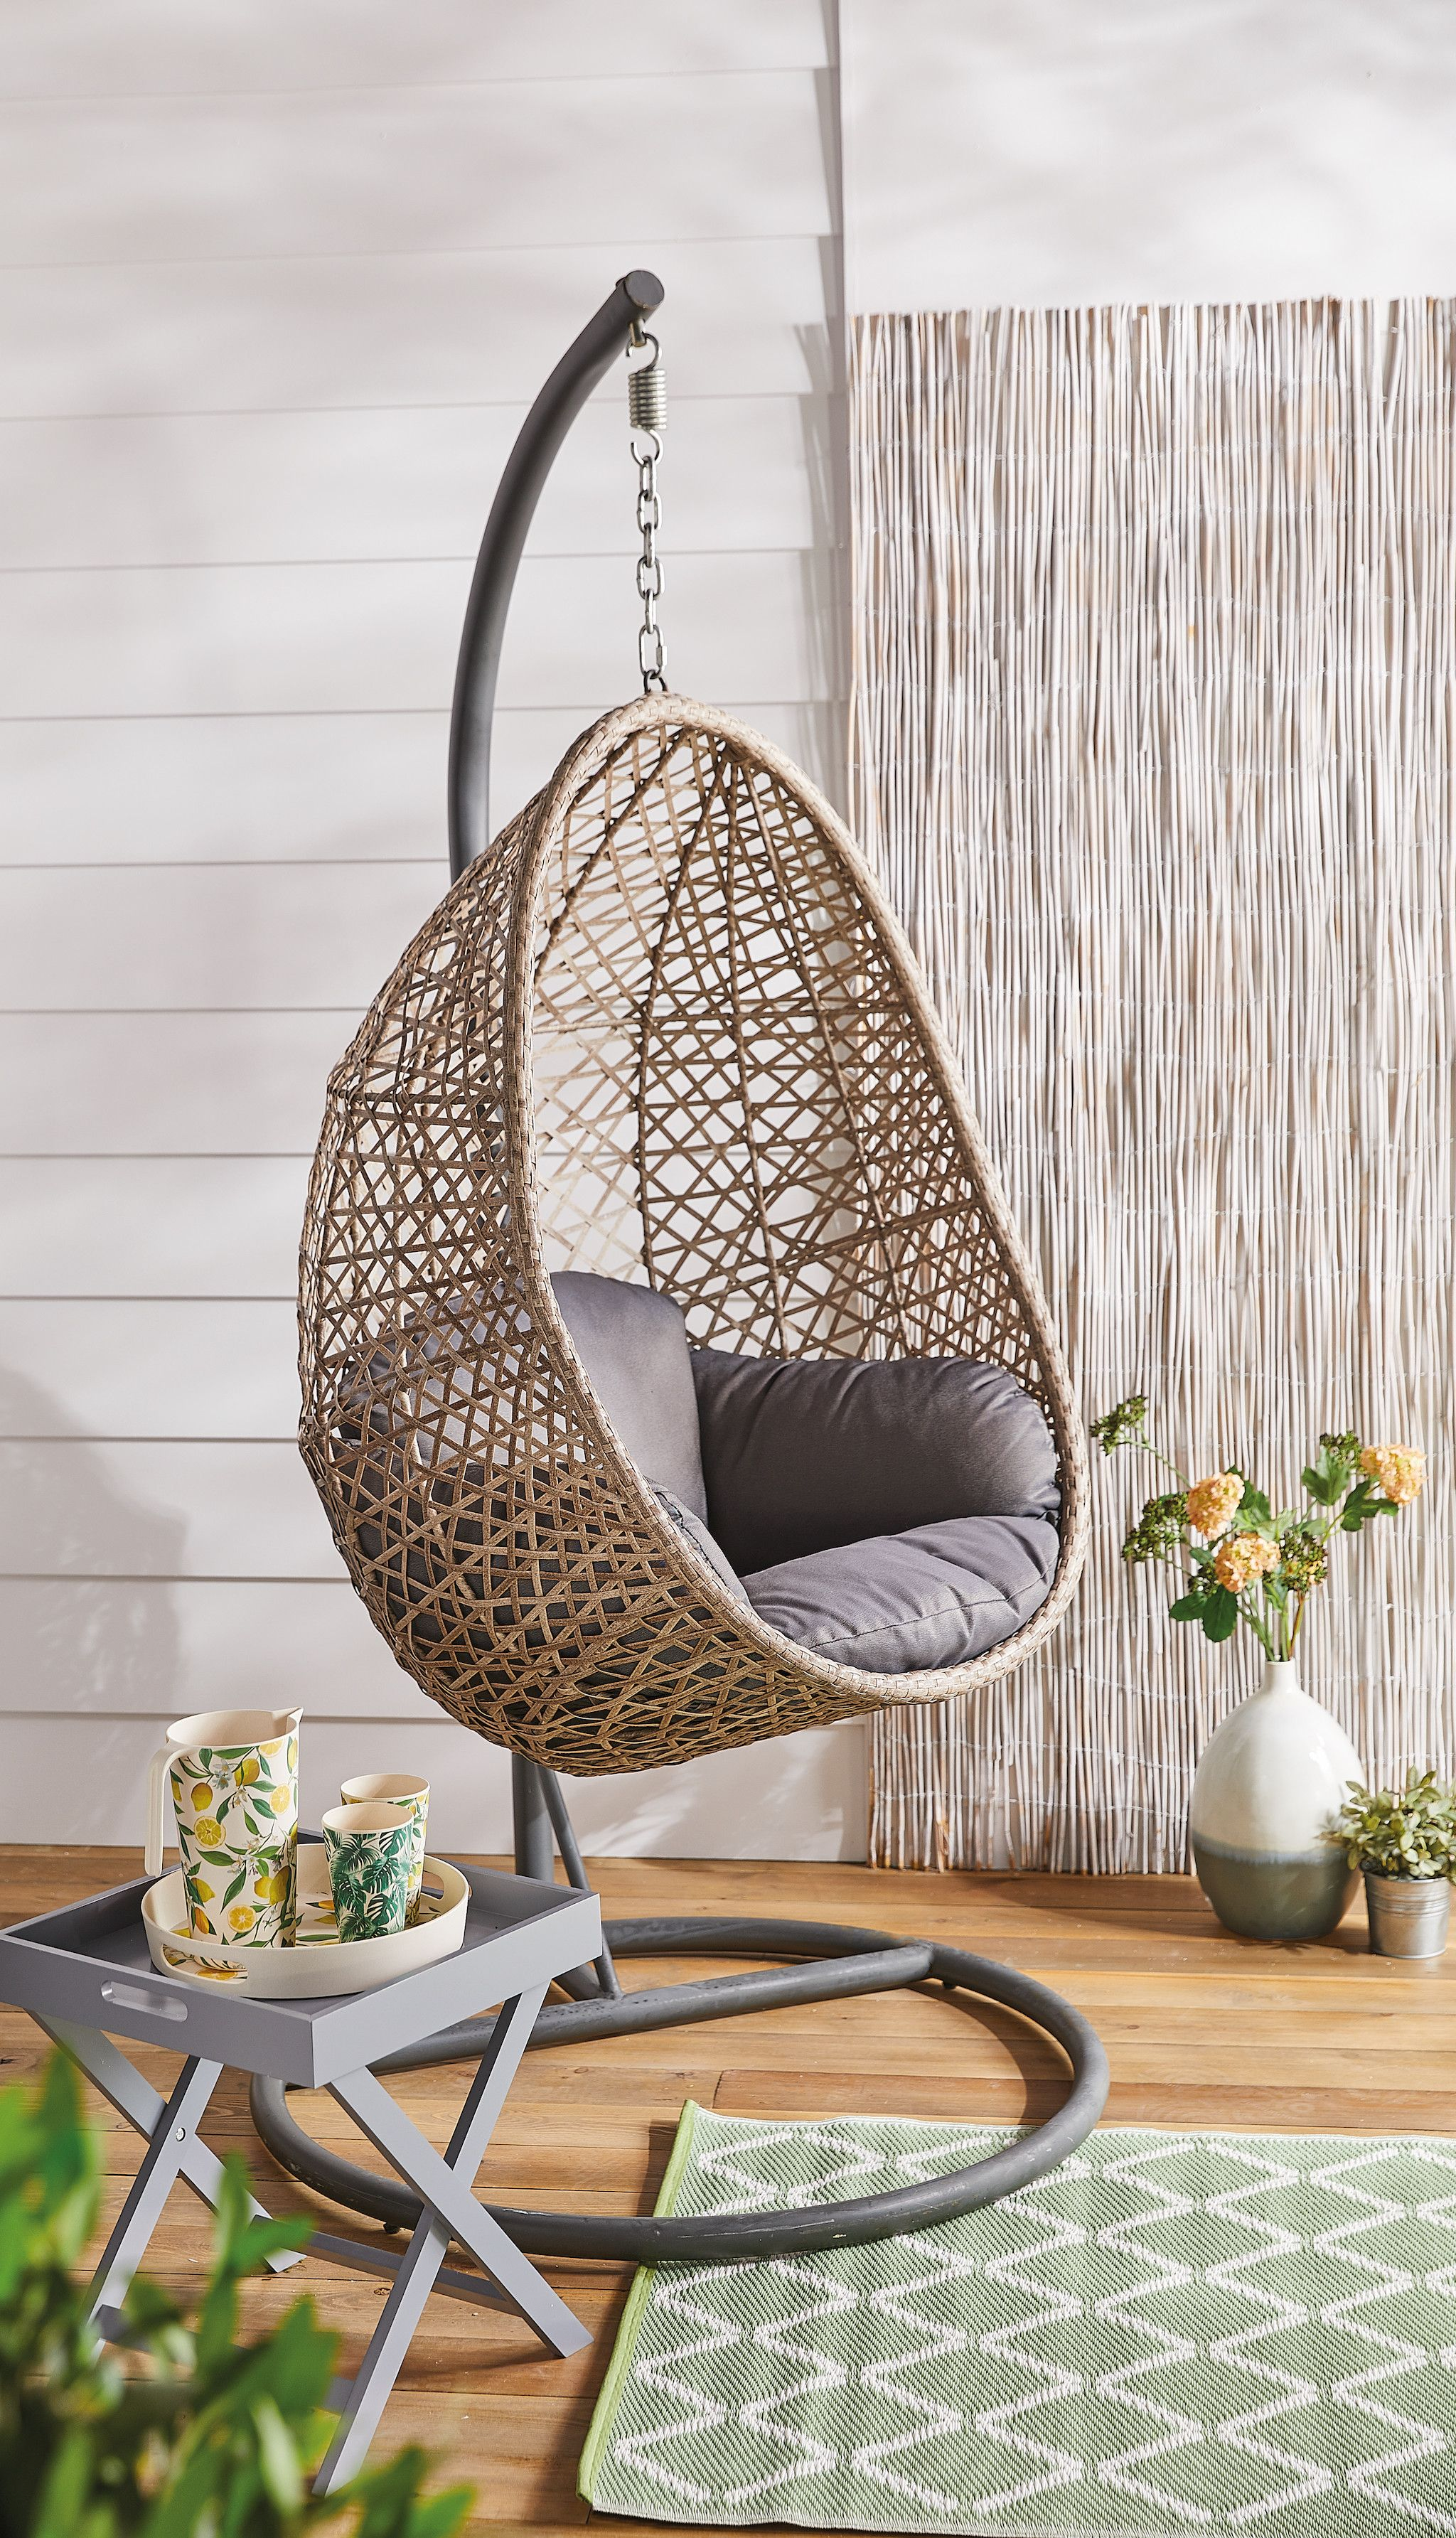 Wicker Egg Chairs For Sale New Aldi Garden Furniture Is Largest Ever Outdoor Range Aldi